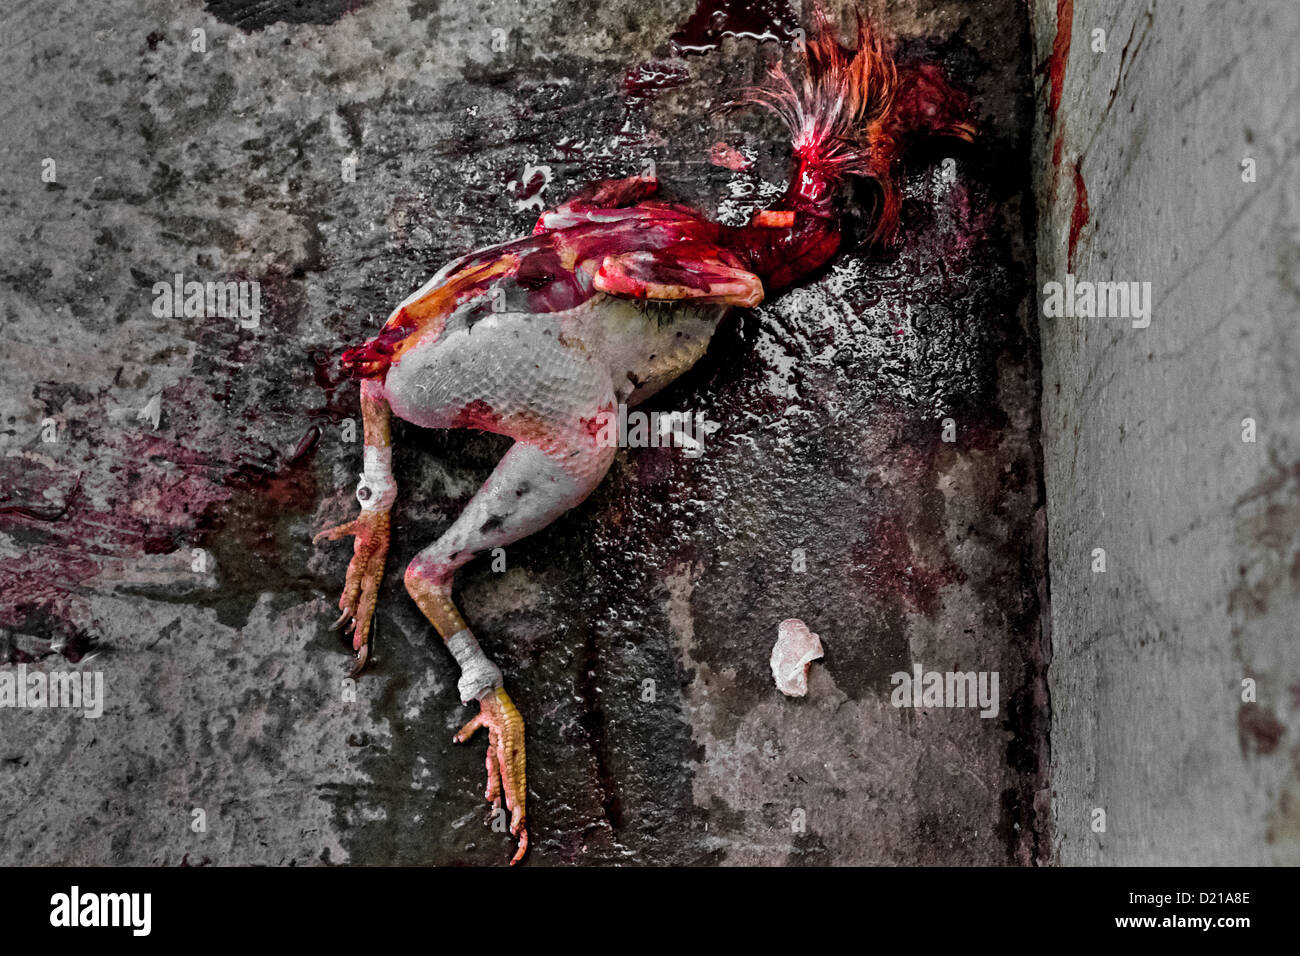 a-dead-mutilated-body-of-a-fighting-cock